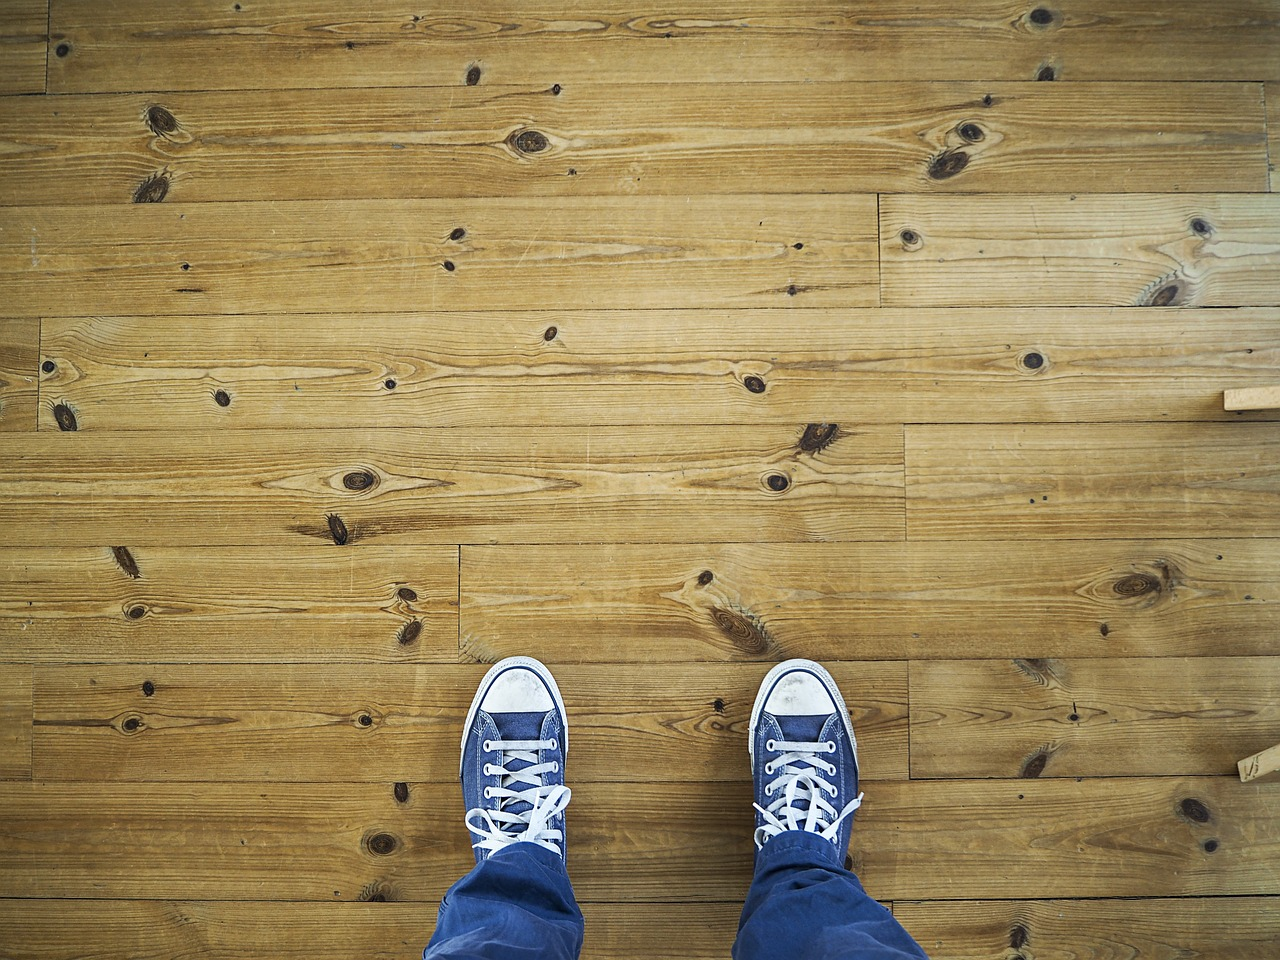 How to clean and shine laminate floors?